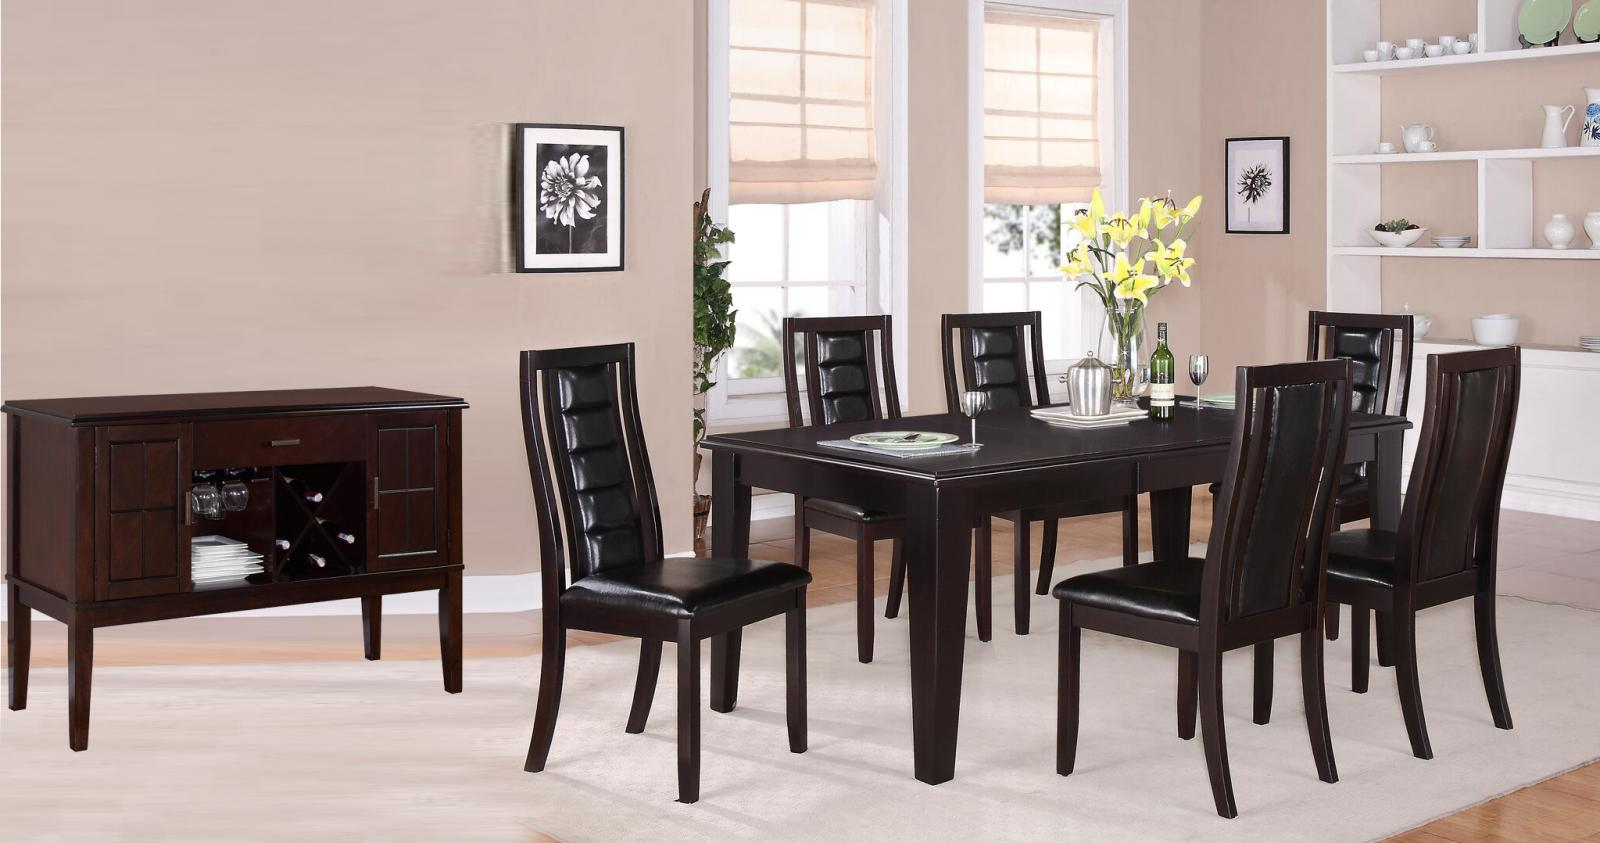 Transitional Espresso Faux Leather Dining Room Set 8 pcs Cosmos Furniture Era-Set-8